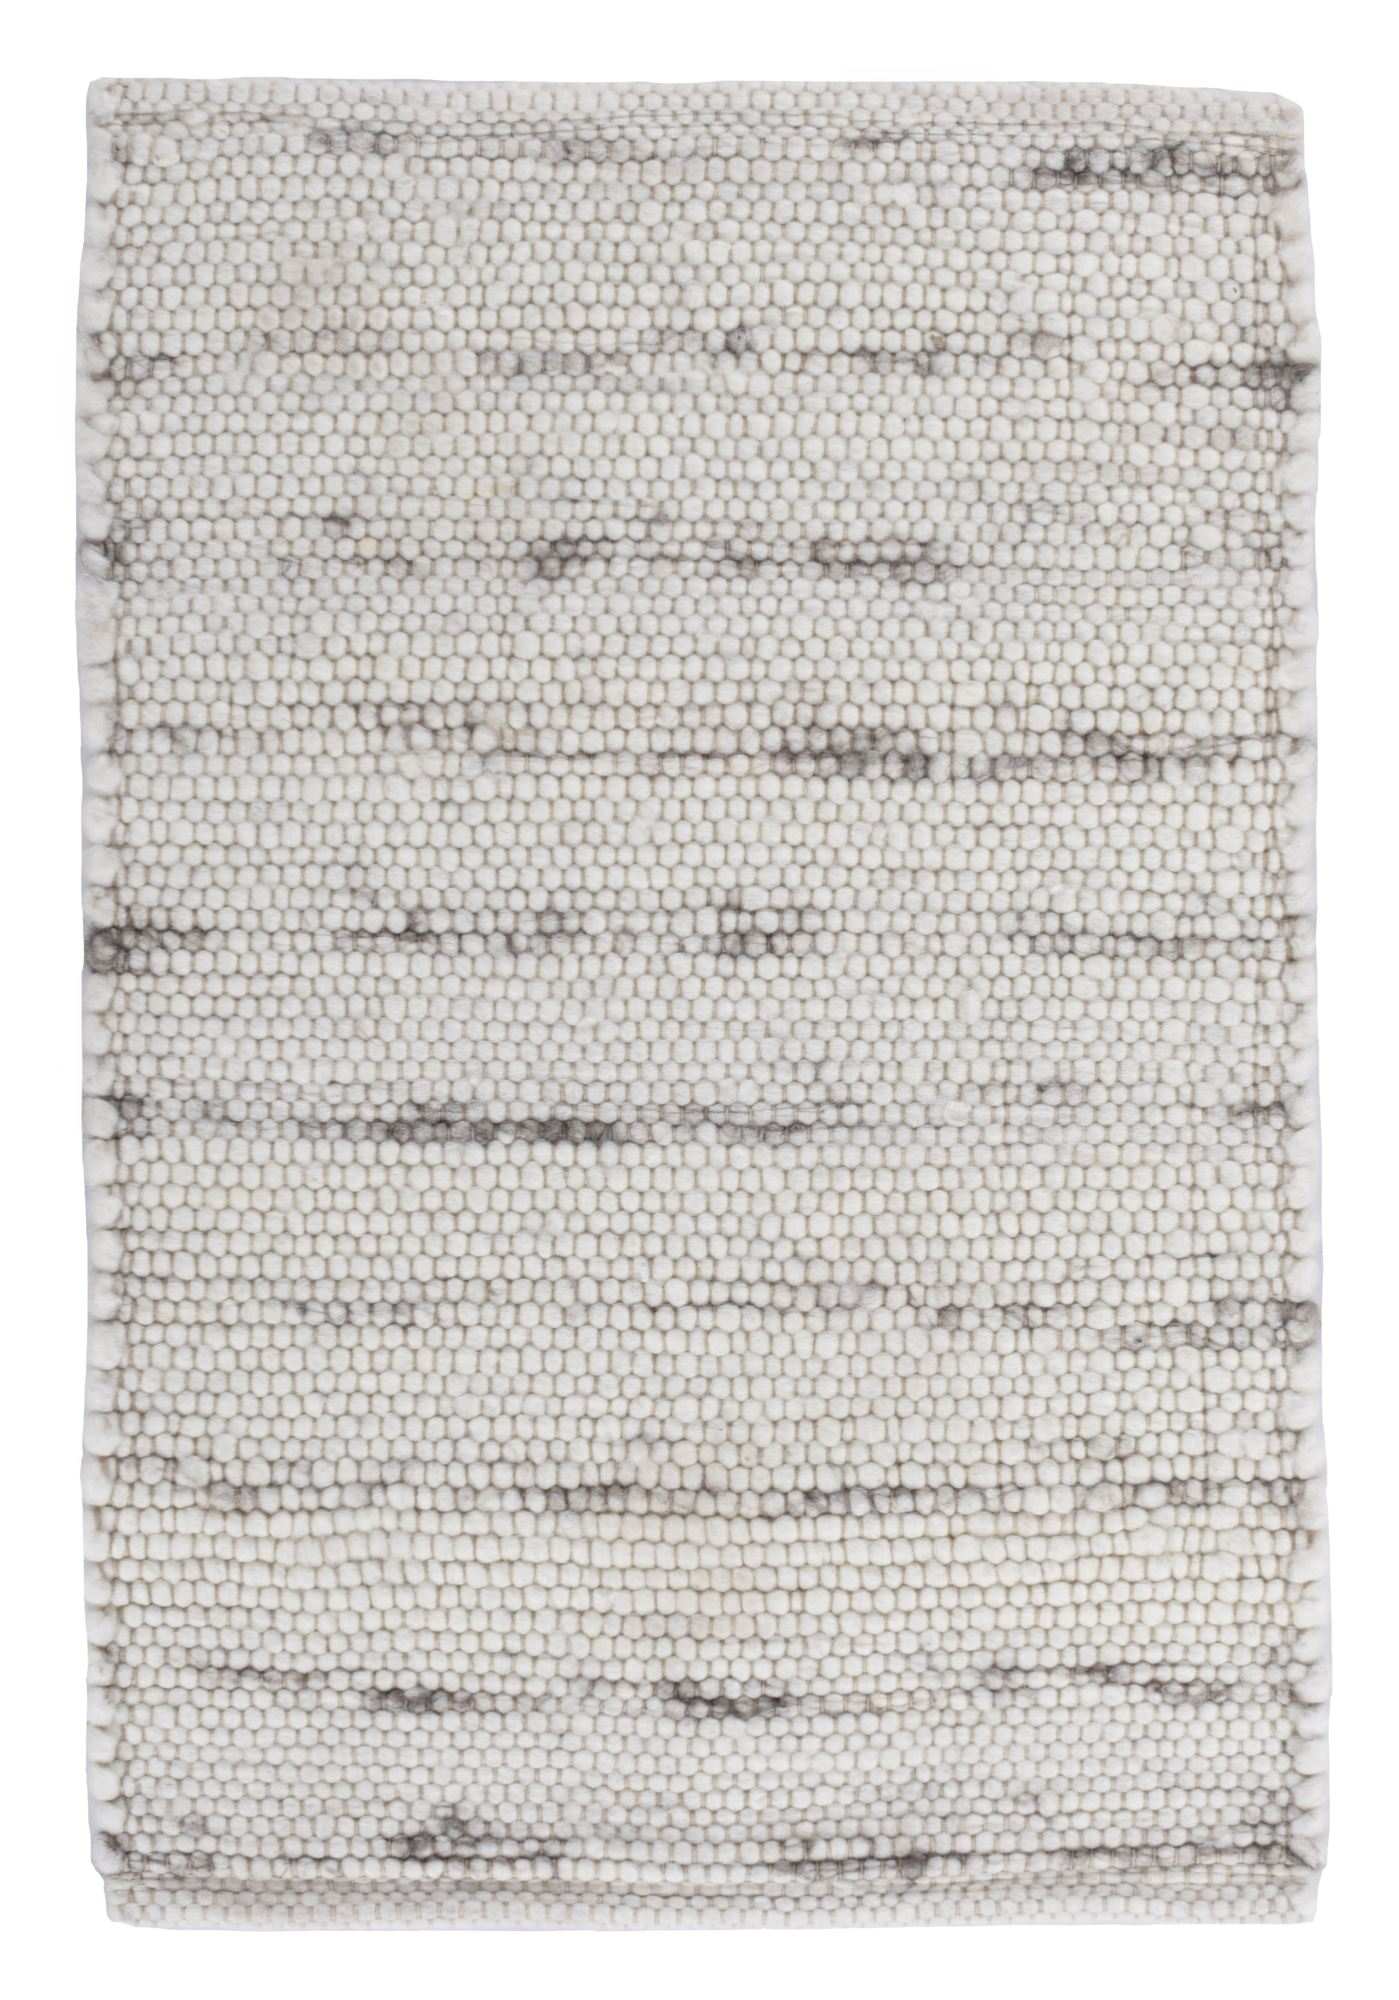 Tapis tissé à la main en laine naturelle natural grey 70x240